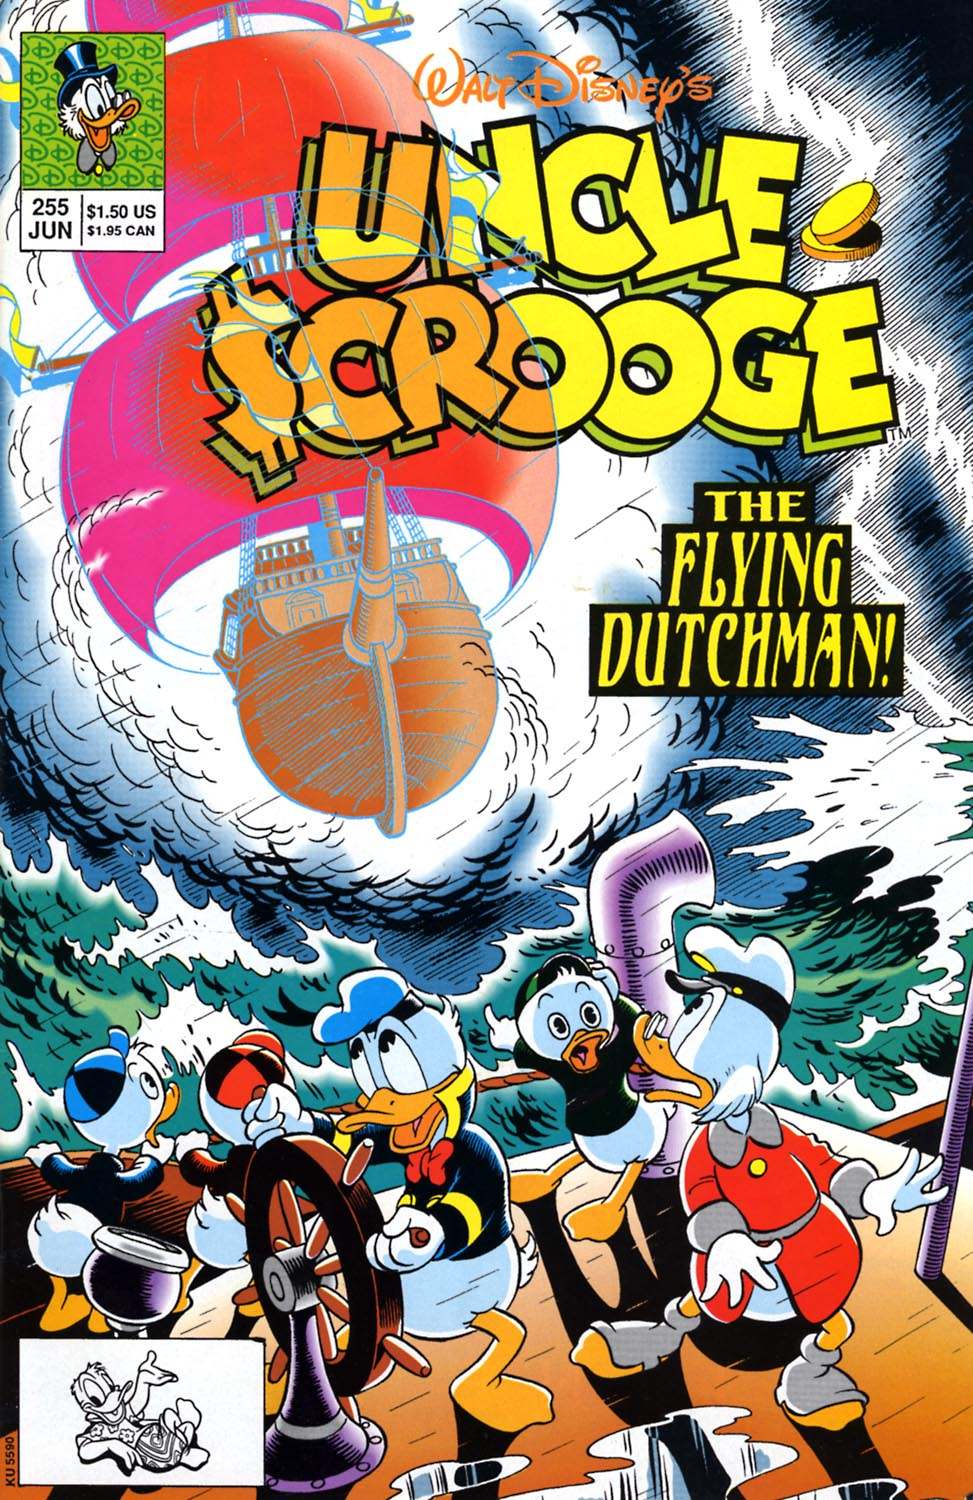 Read online Uncle Scrooge (1953) comic -  Issue #255 - 1